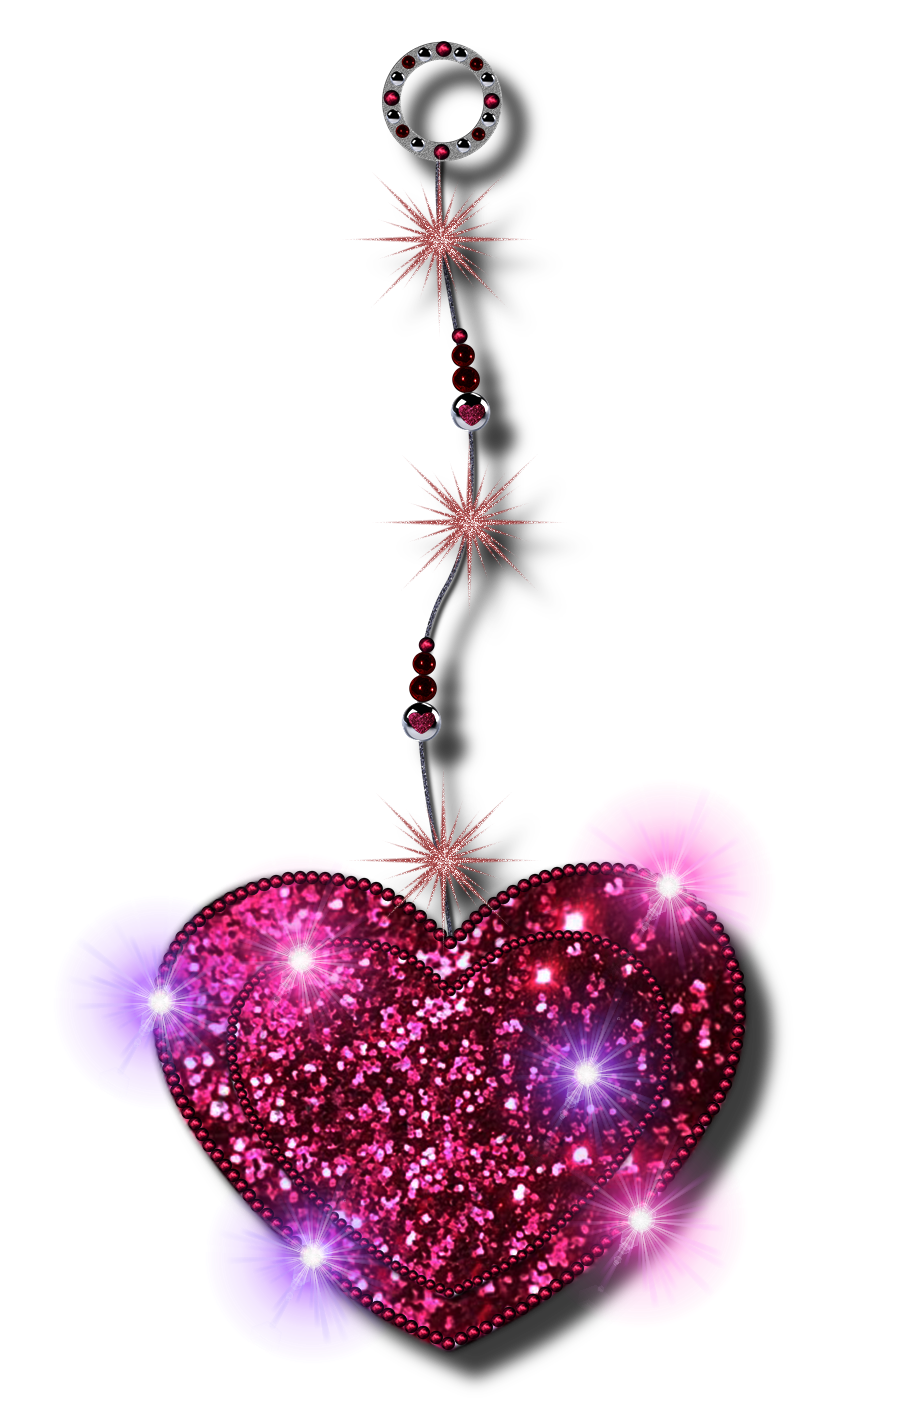 Png heart by jssanda. Holiday clipart glitter